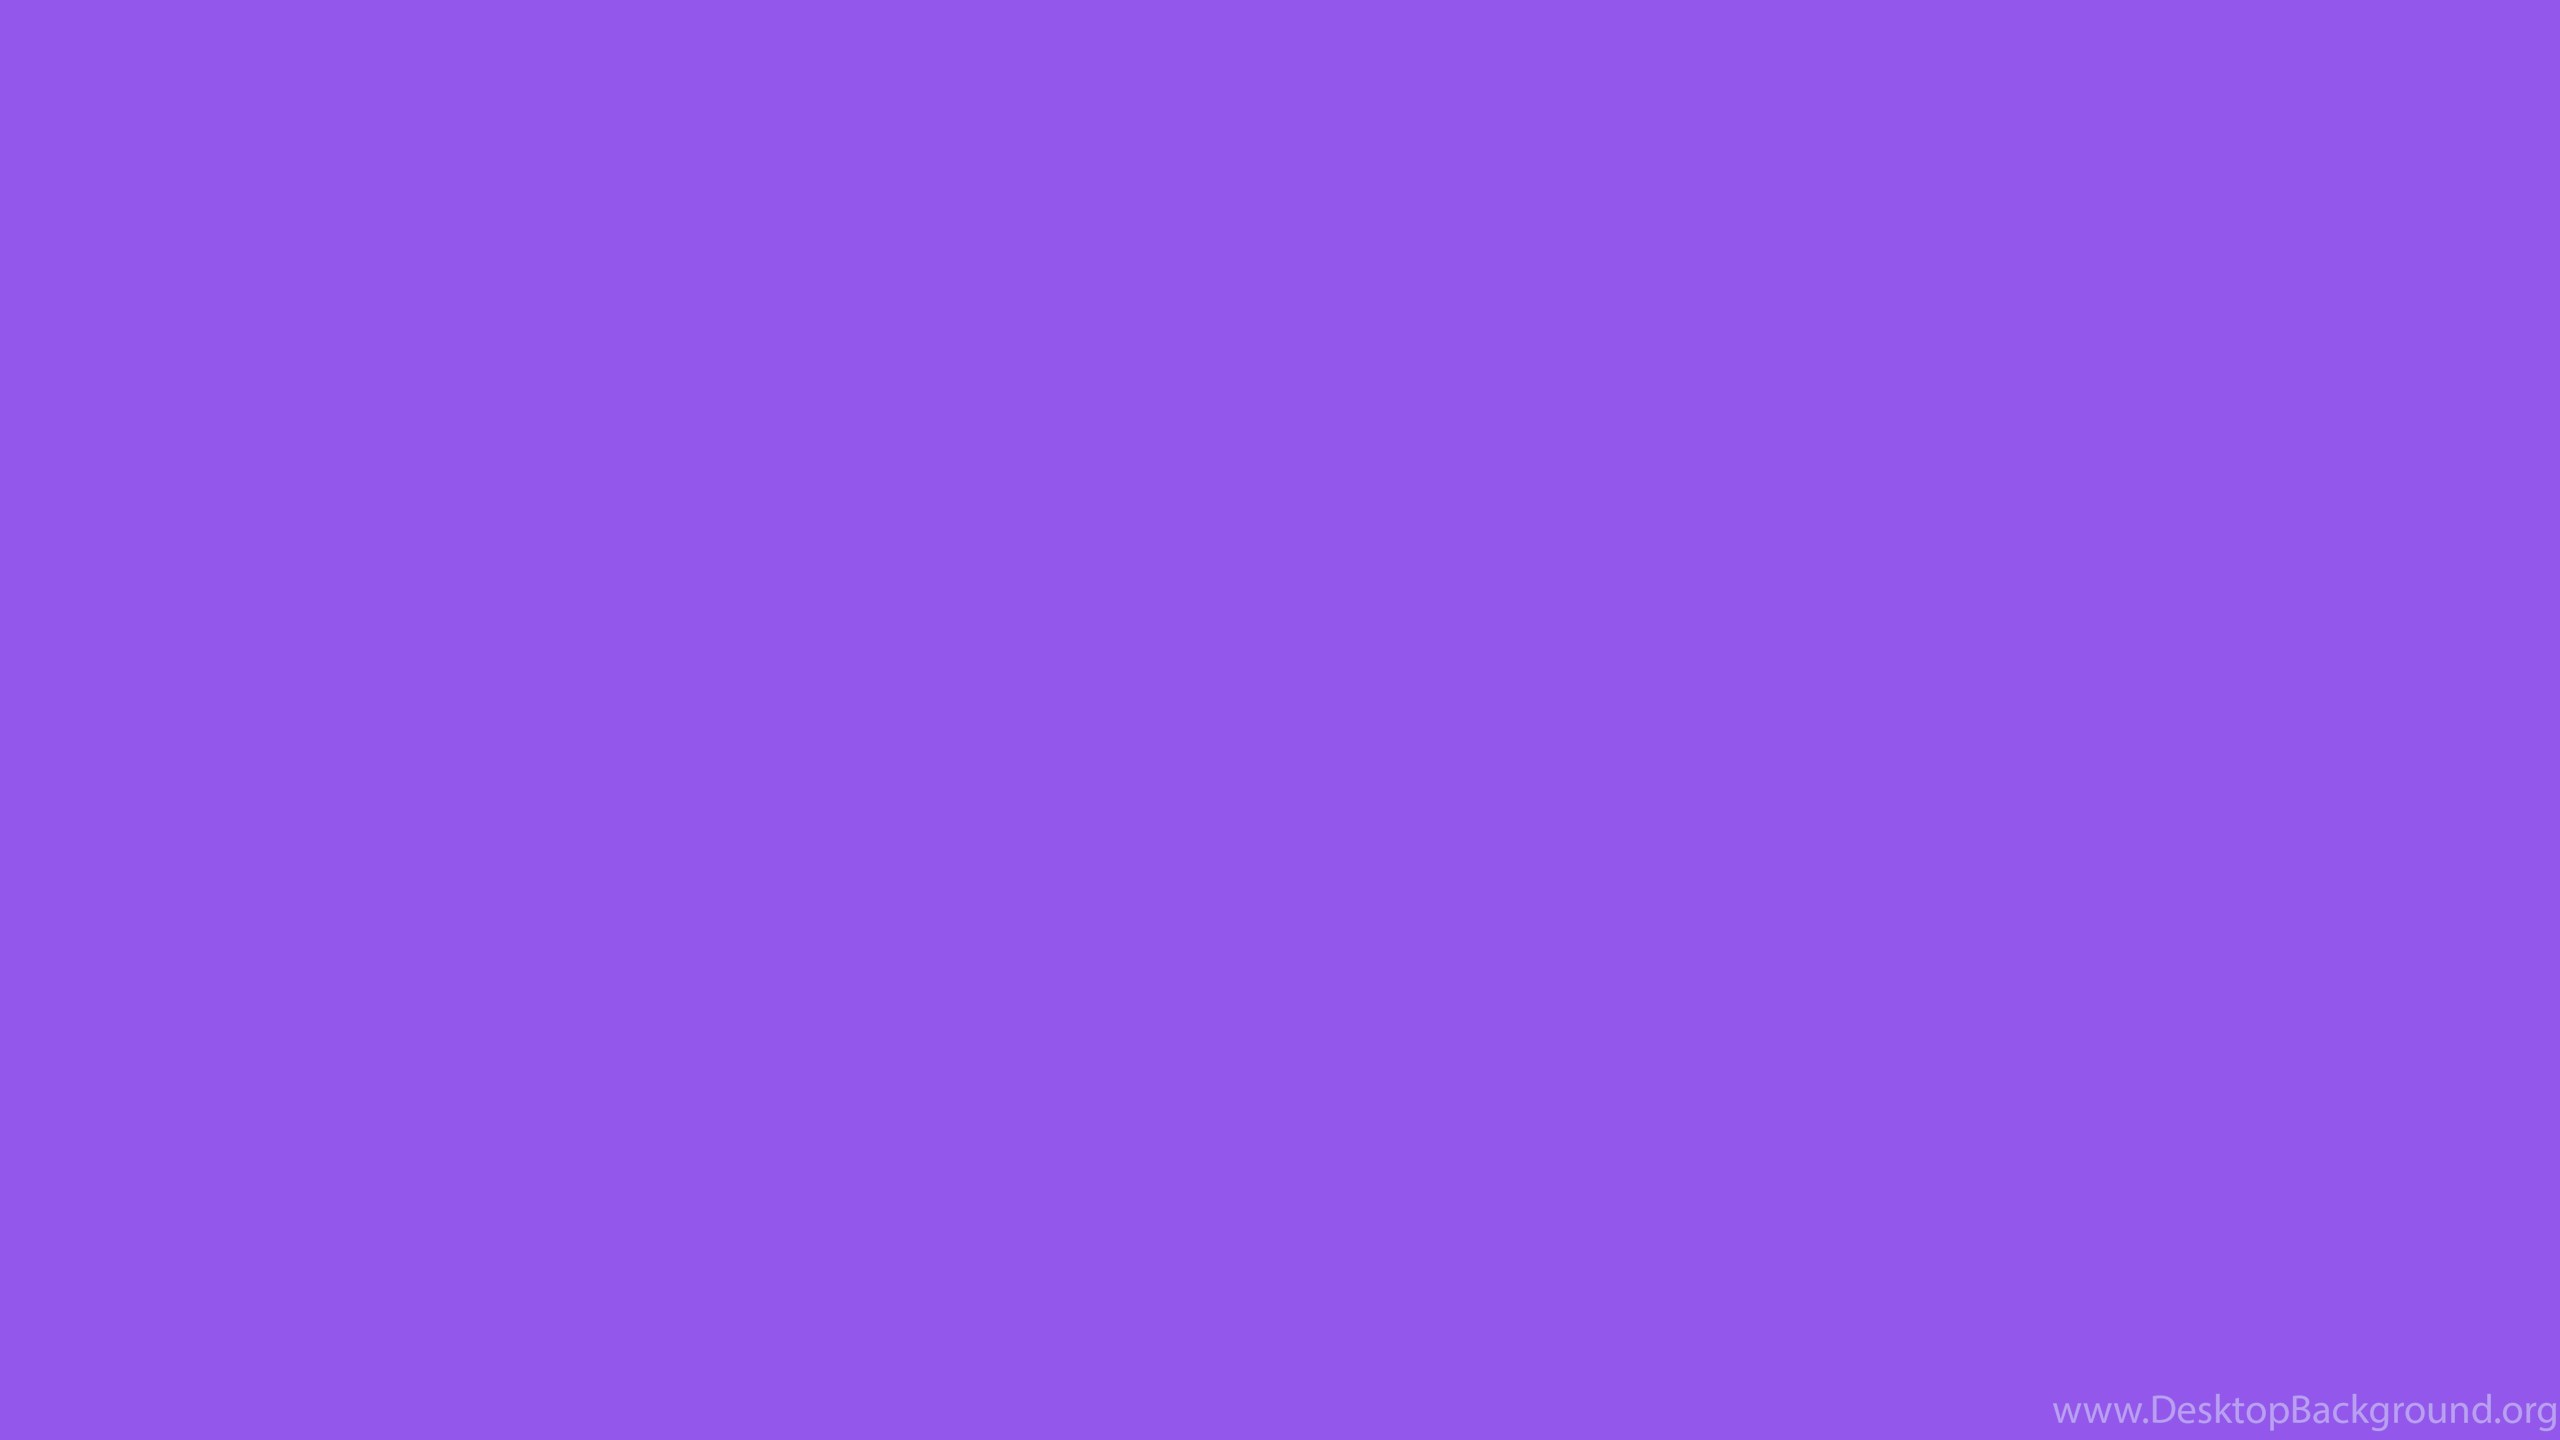 2560x1600 Lavender Indigo Solid Color Backgrounds Desktop ...